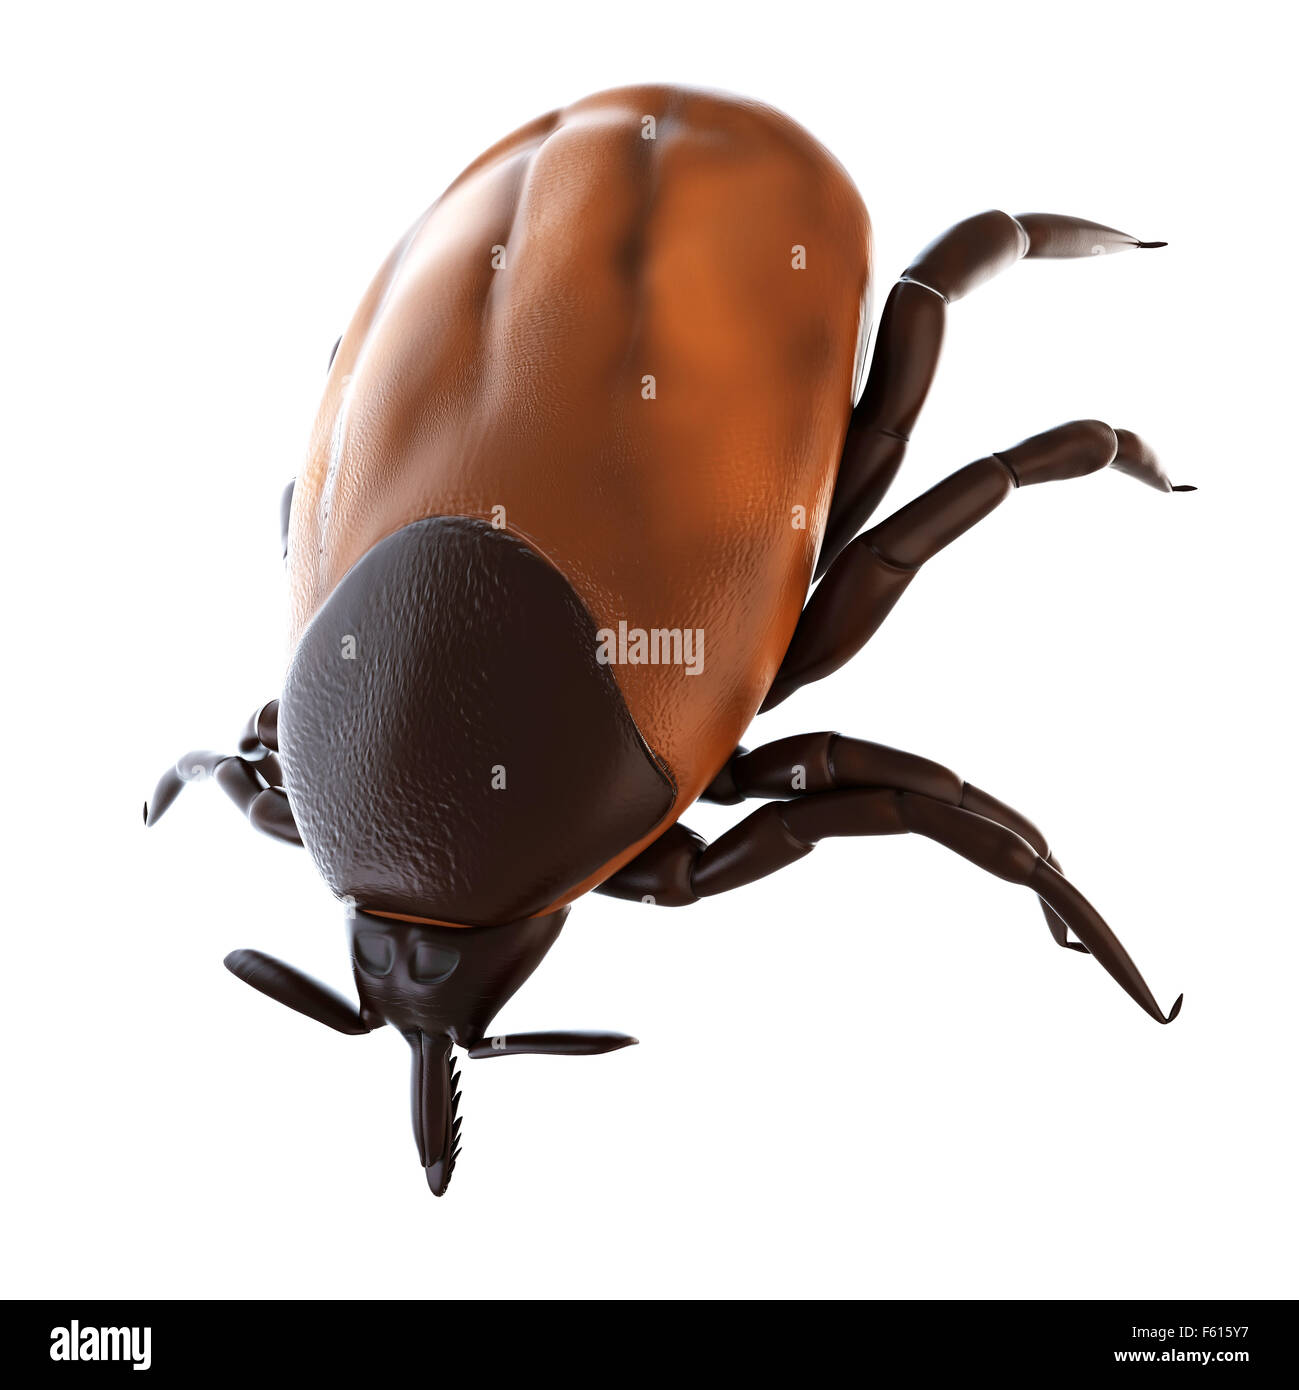 Tick Insect Anatomy Stock Photos & Tick Insect Anatomy Stock Images ...